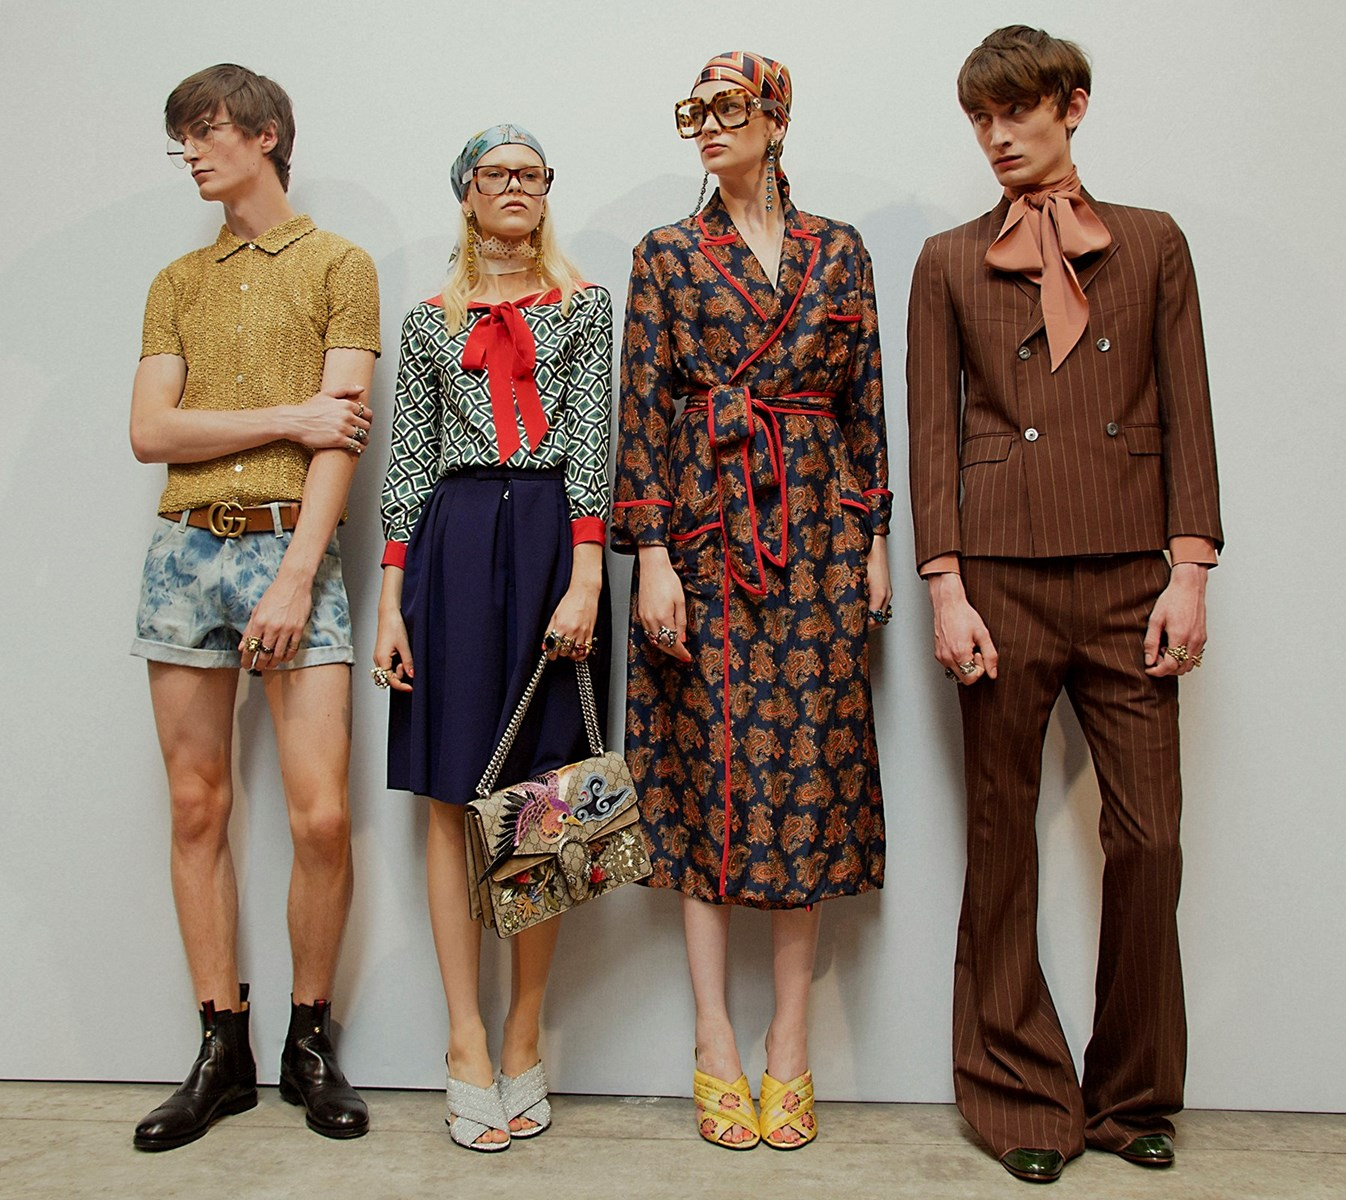 http://obviousmag.org/rg_proprio/gucci-ss16.jpg